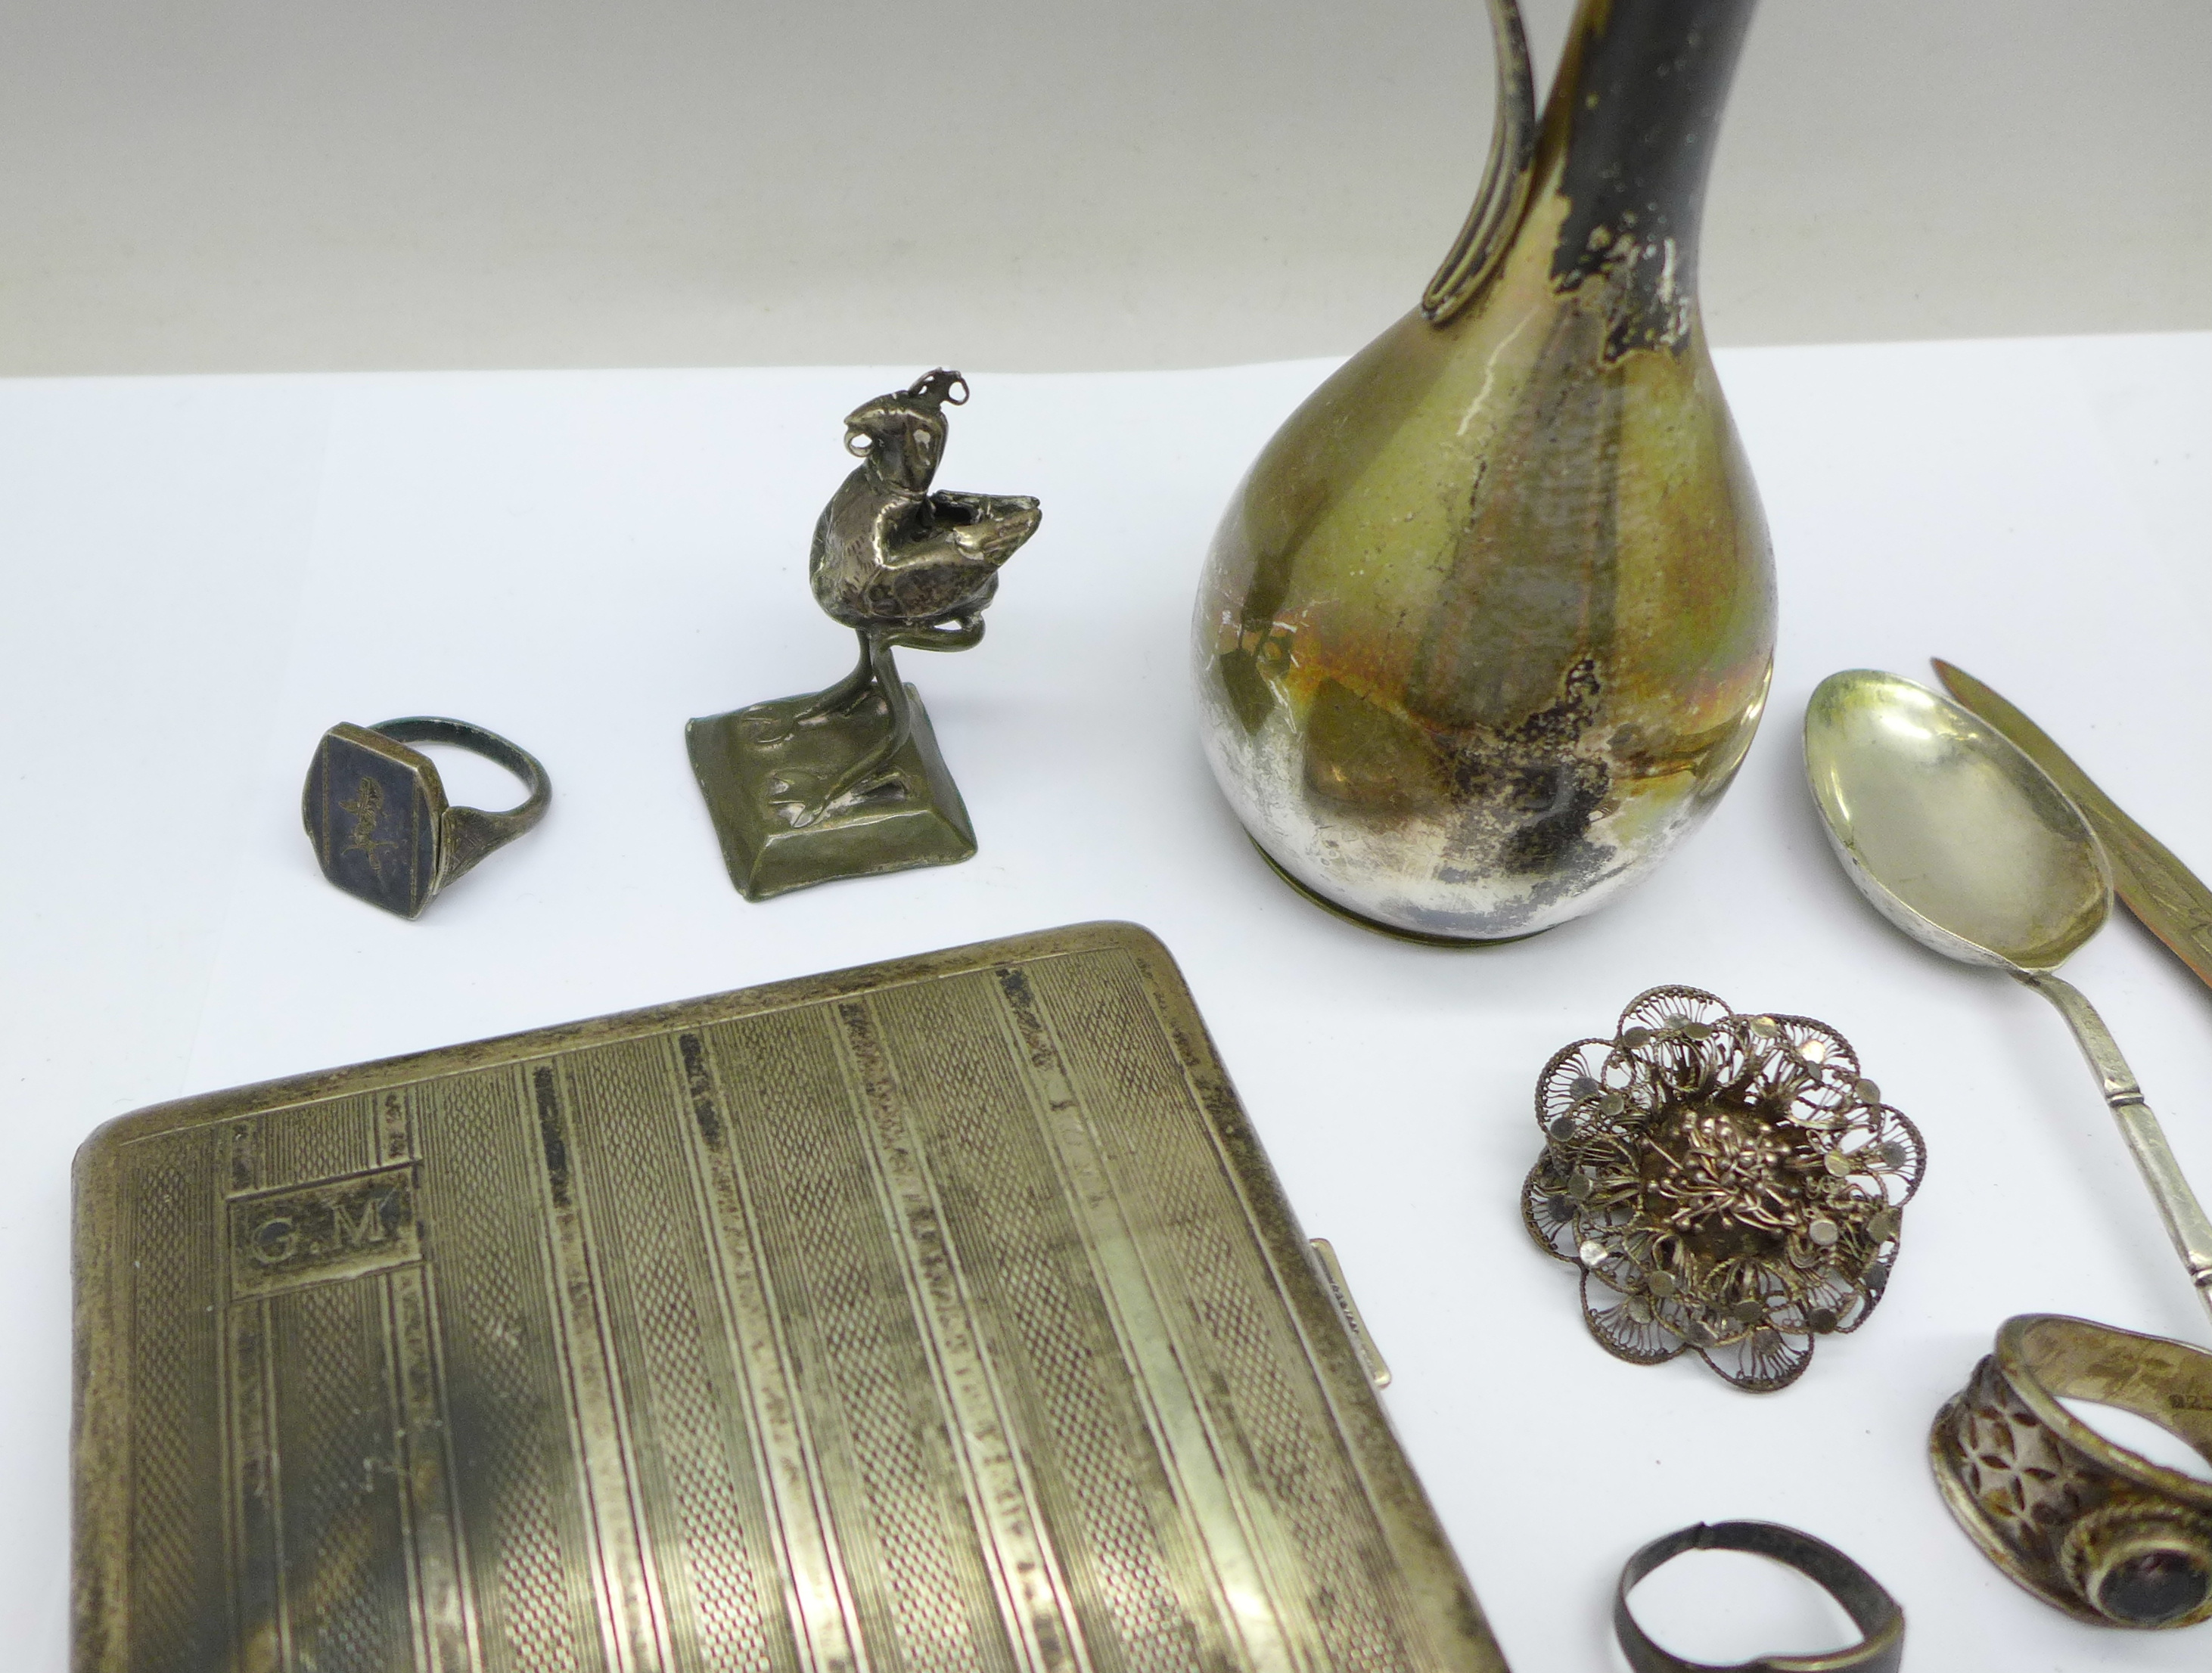 A collection of continental silver including a cigarette case, jug, rings, spoon, etc., 280g - Image 4 of 7